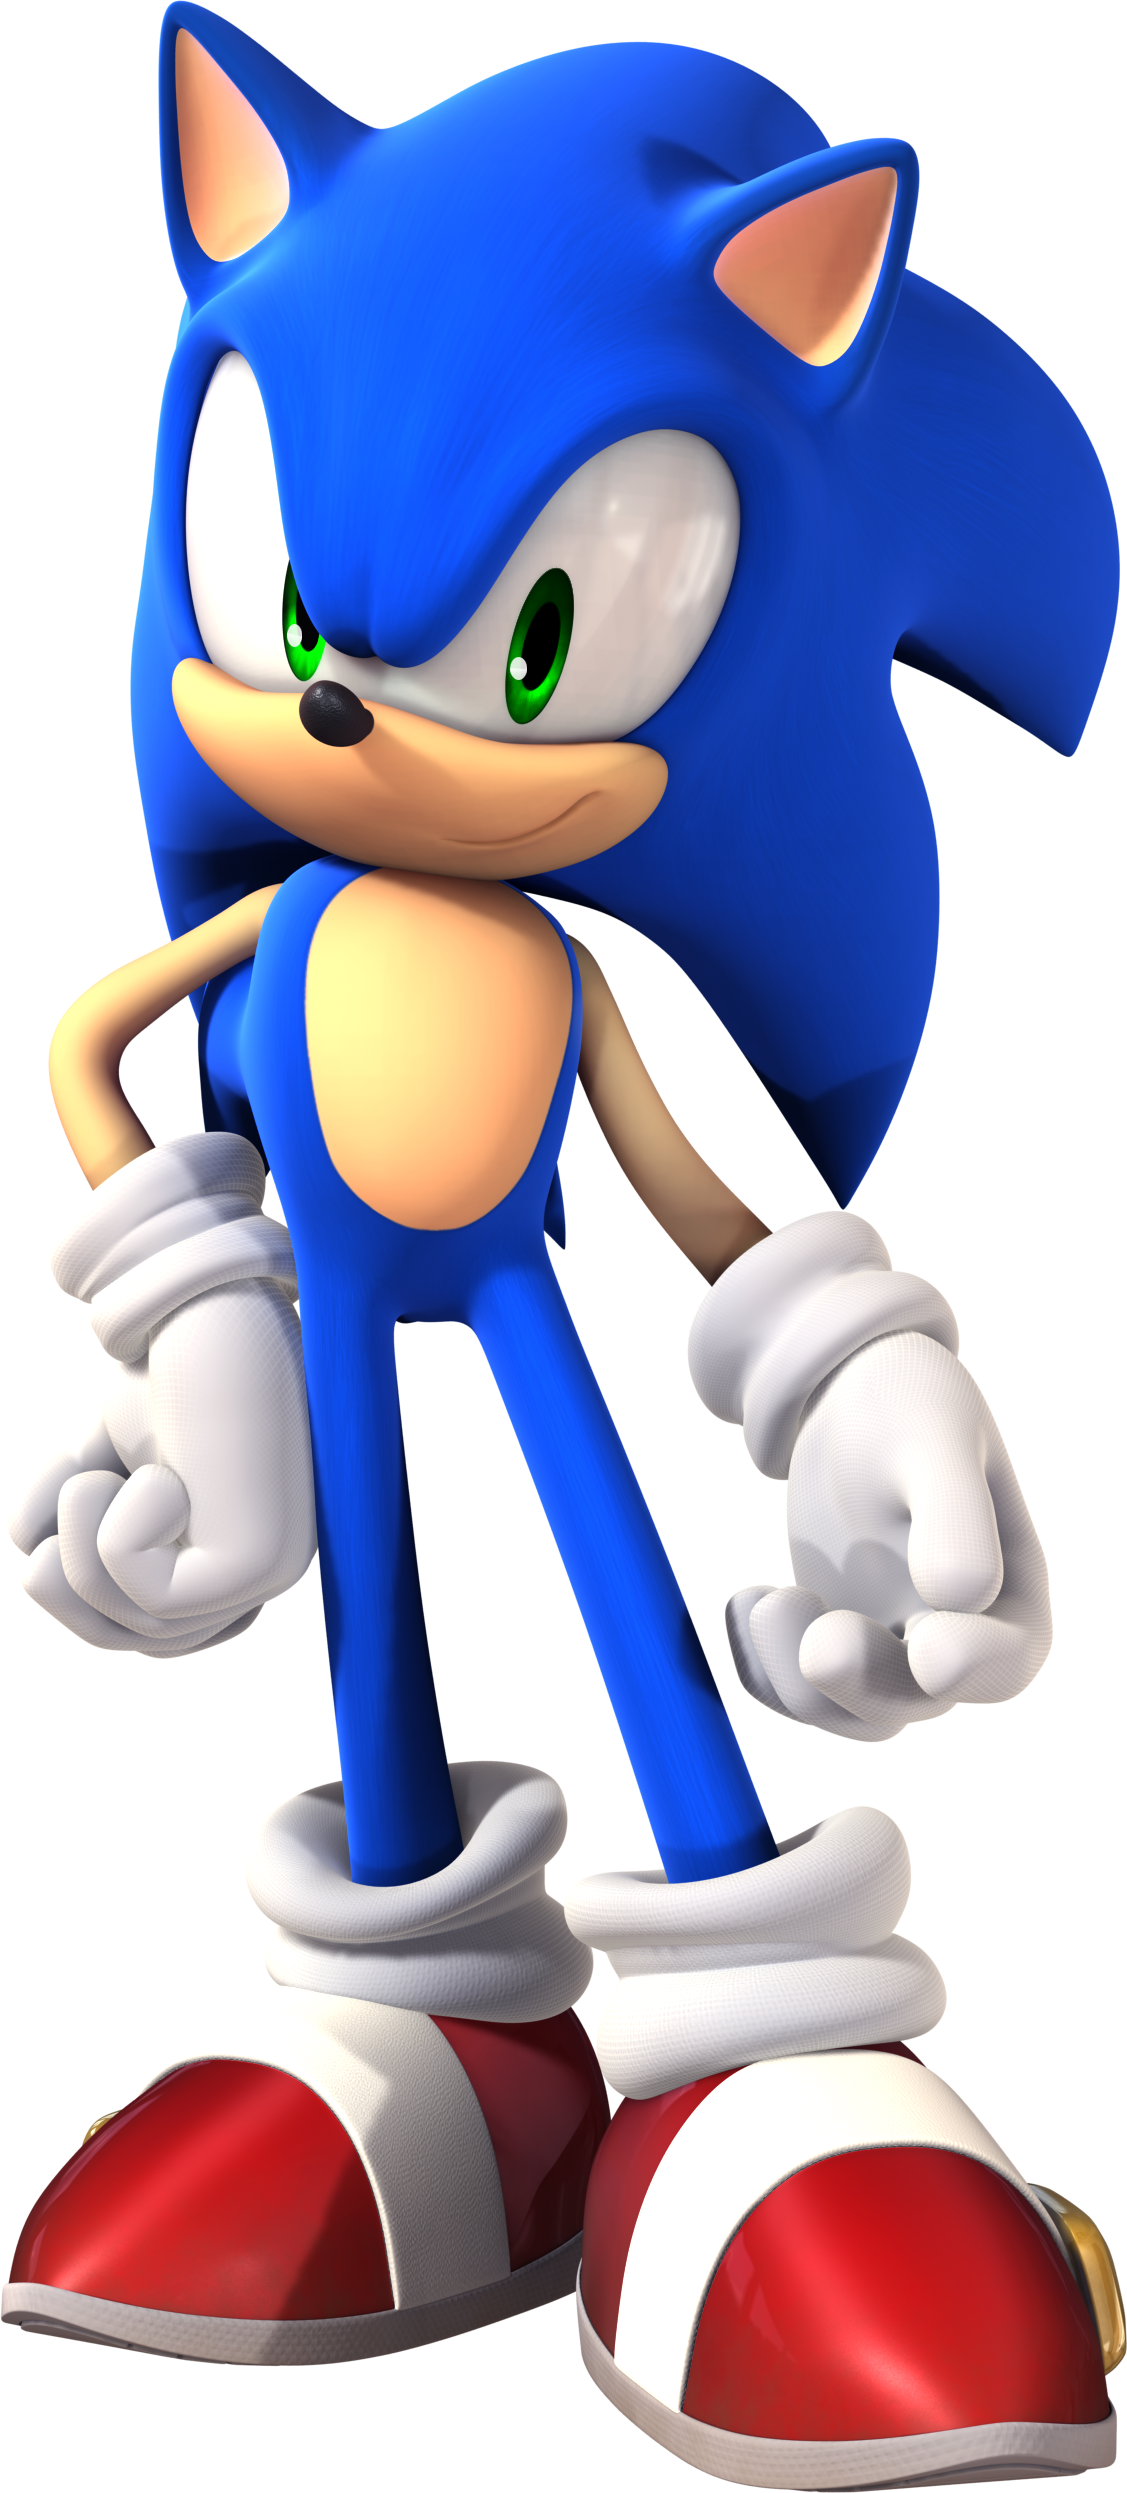 It is a graphic of Canny Images of Sonic